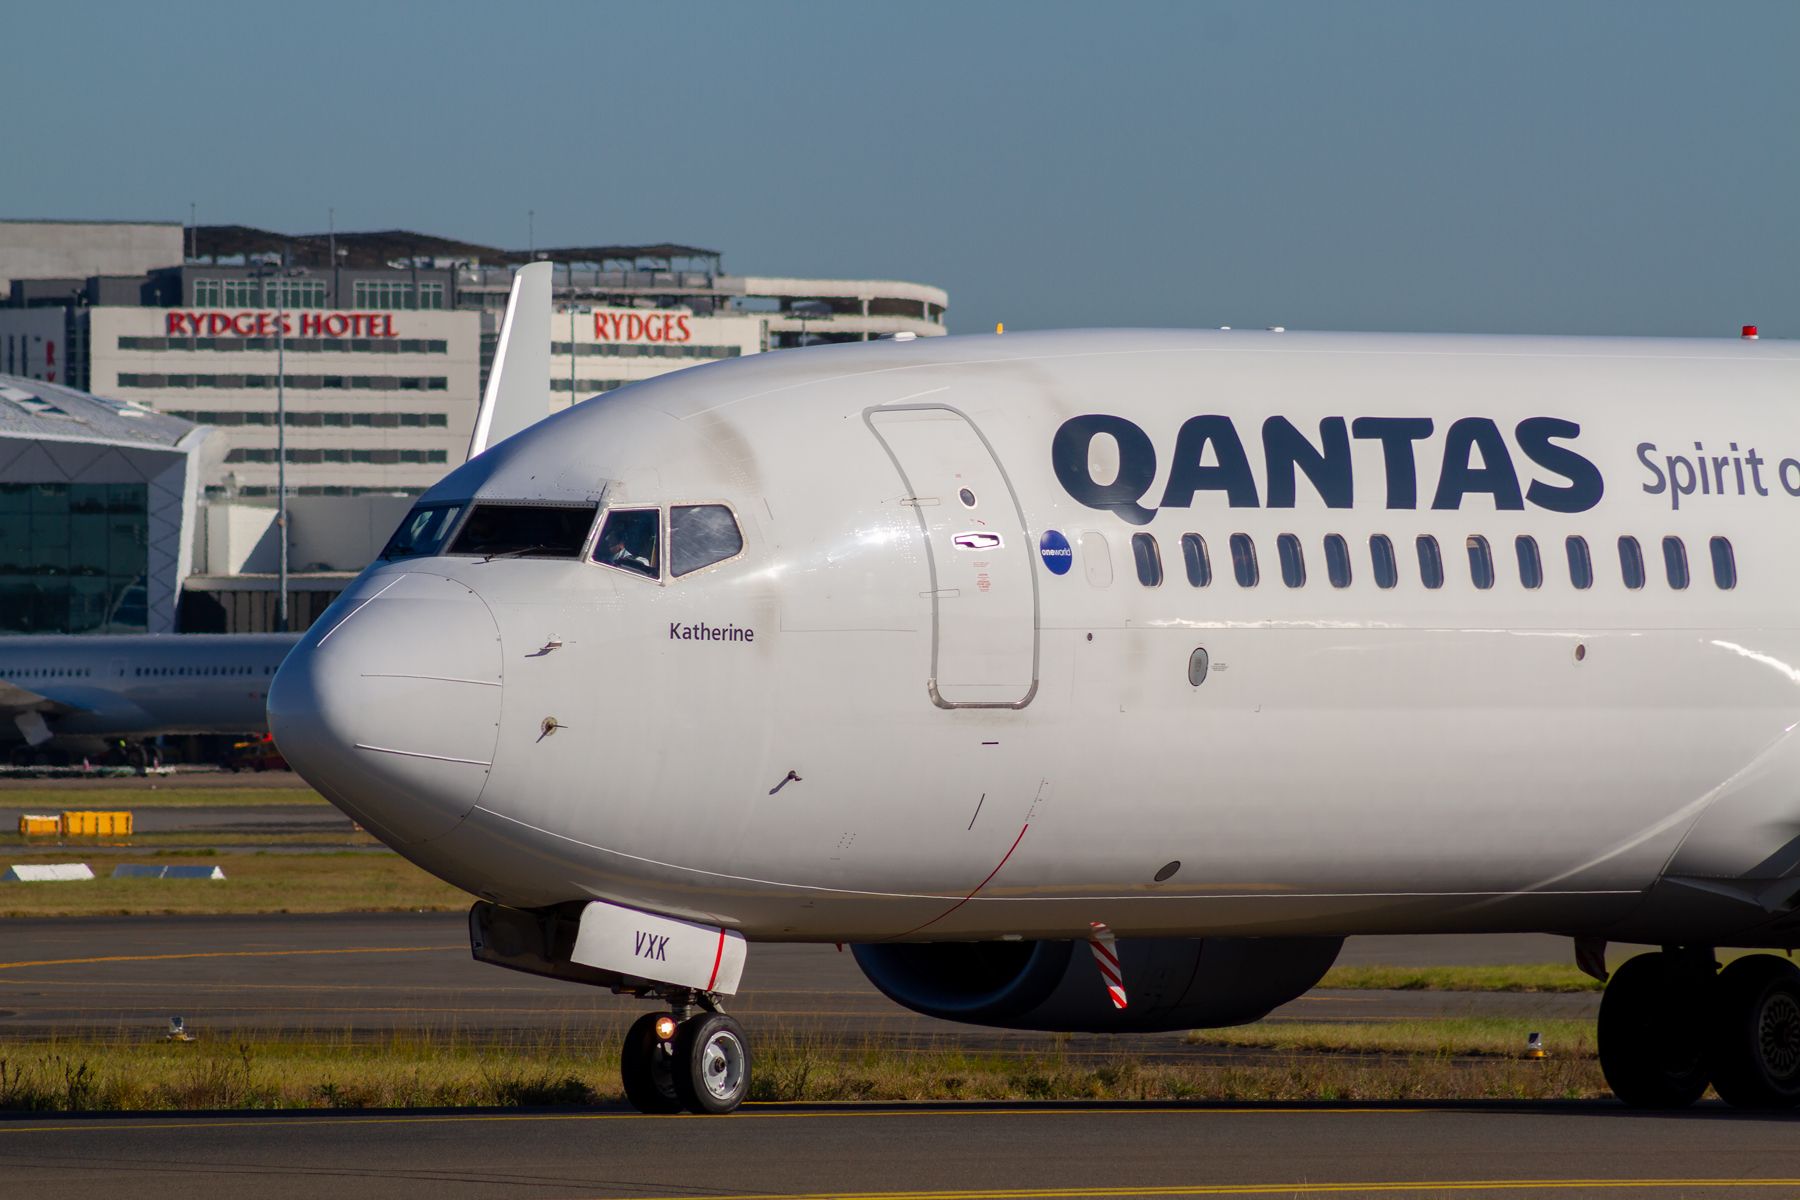 Qantas Boeing 737-800 VH-VXK at Kingsford Smith